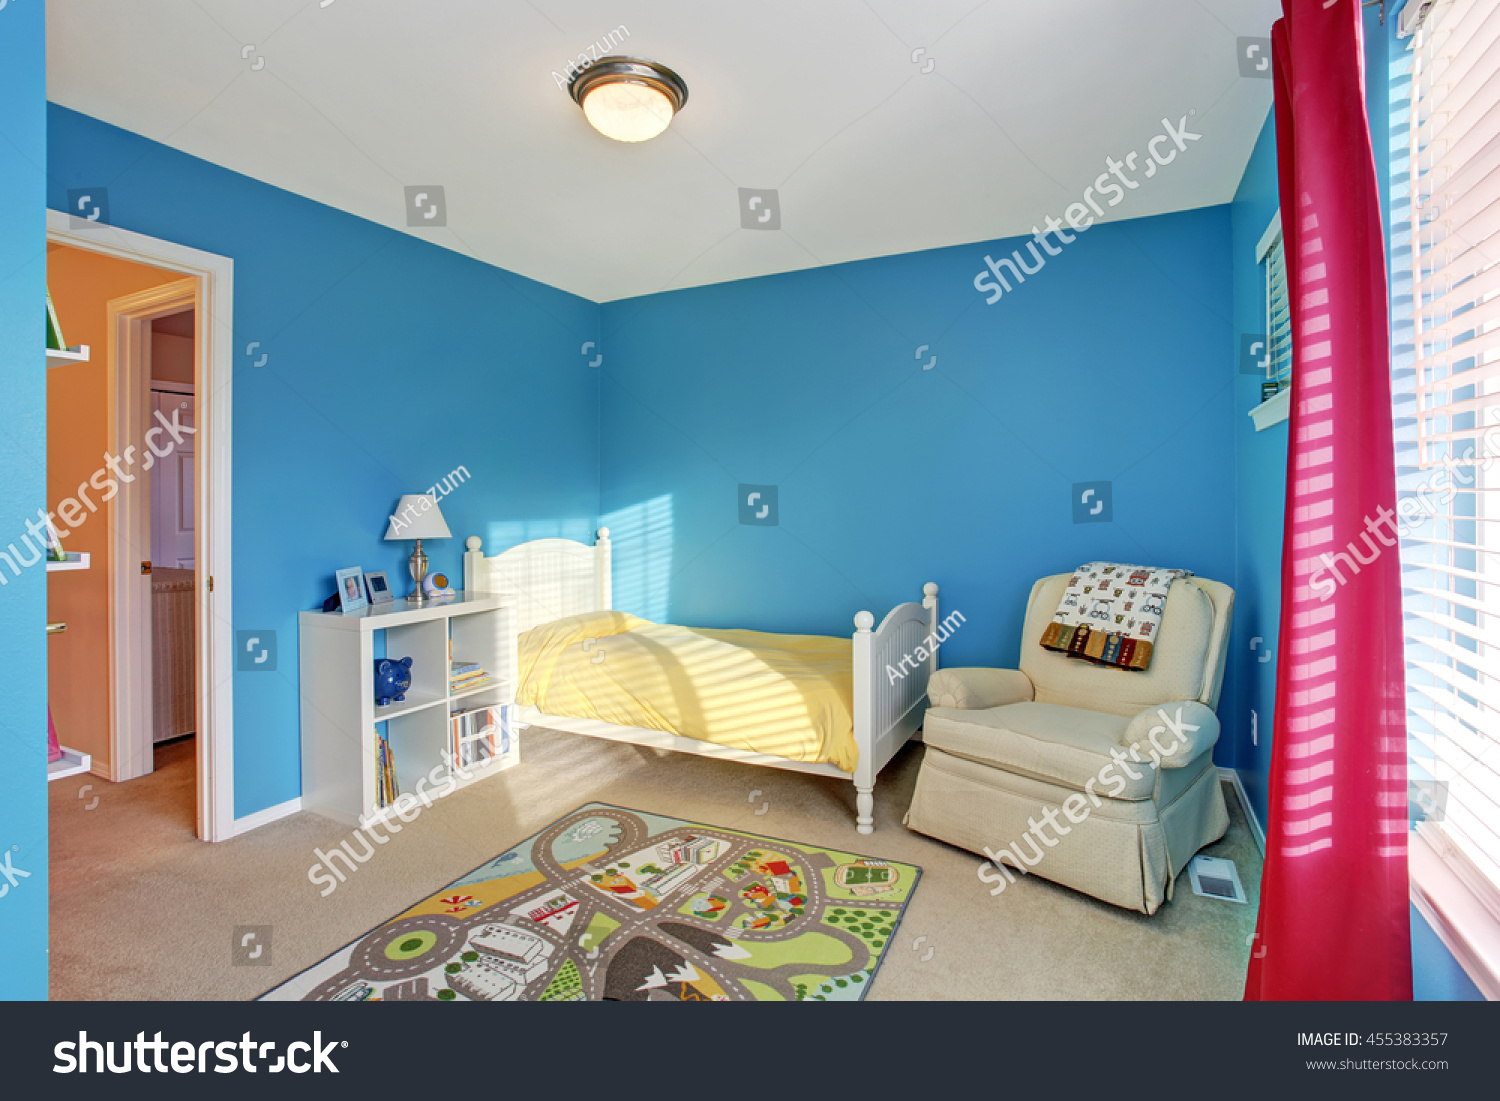 Cute Kids Room Blue Walls Carpet Stock Photo Edit Now 455383357